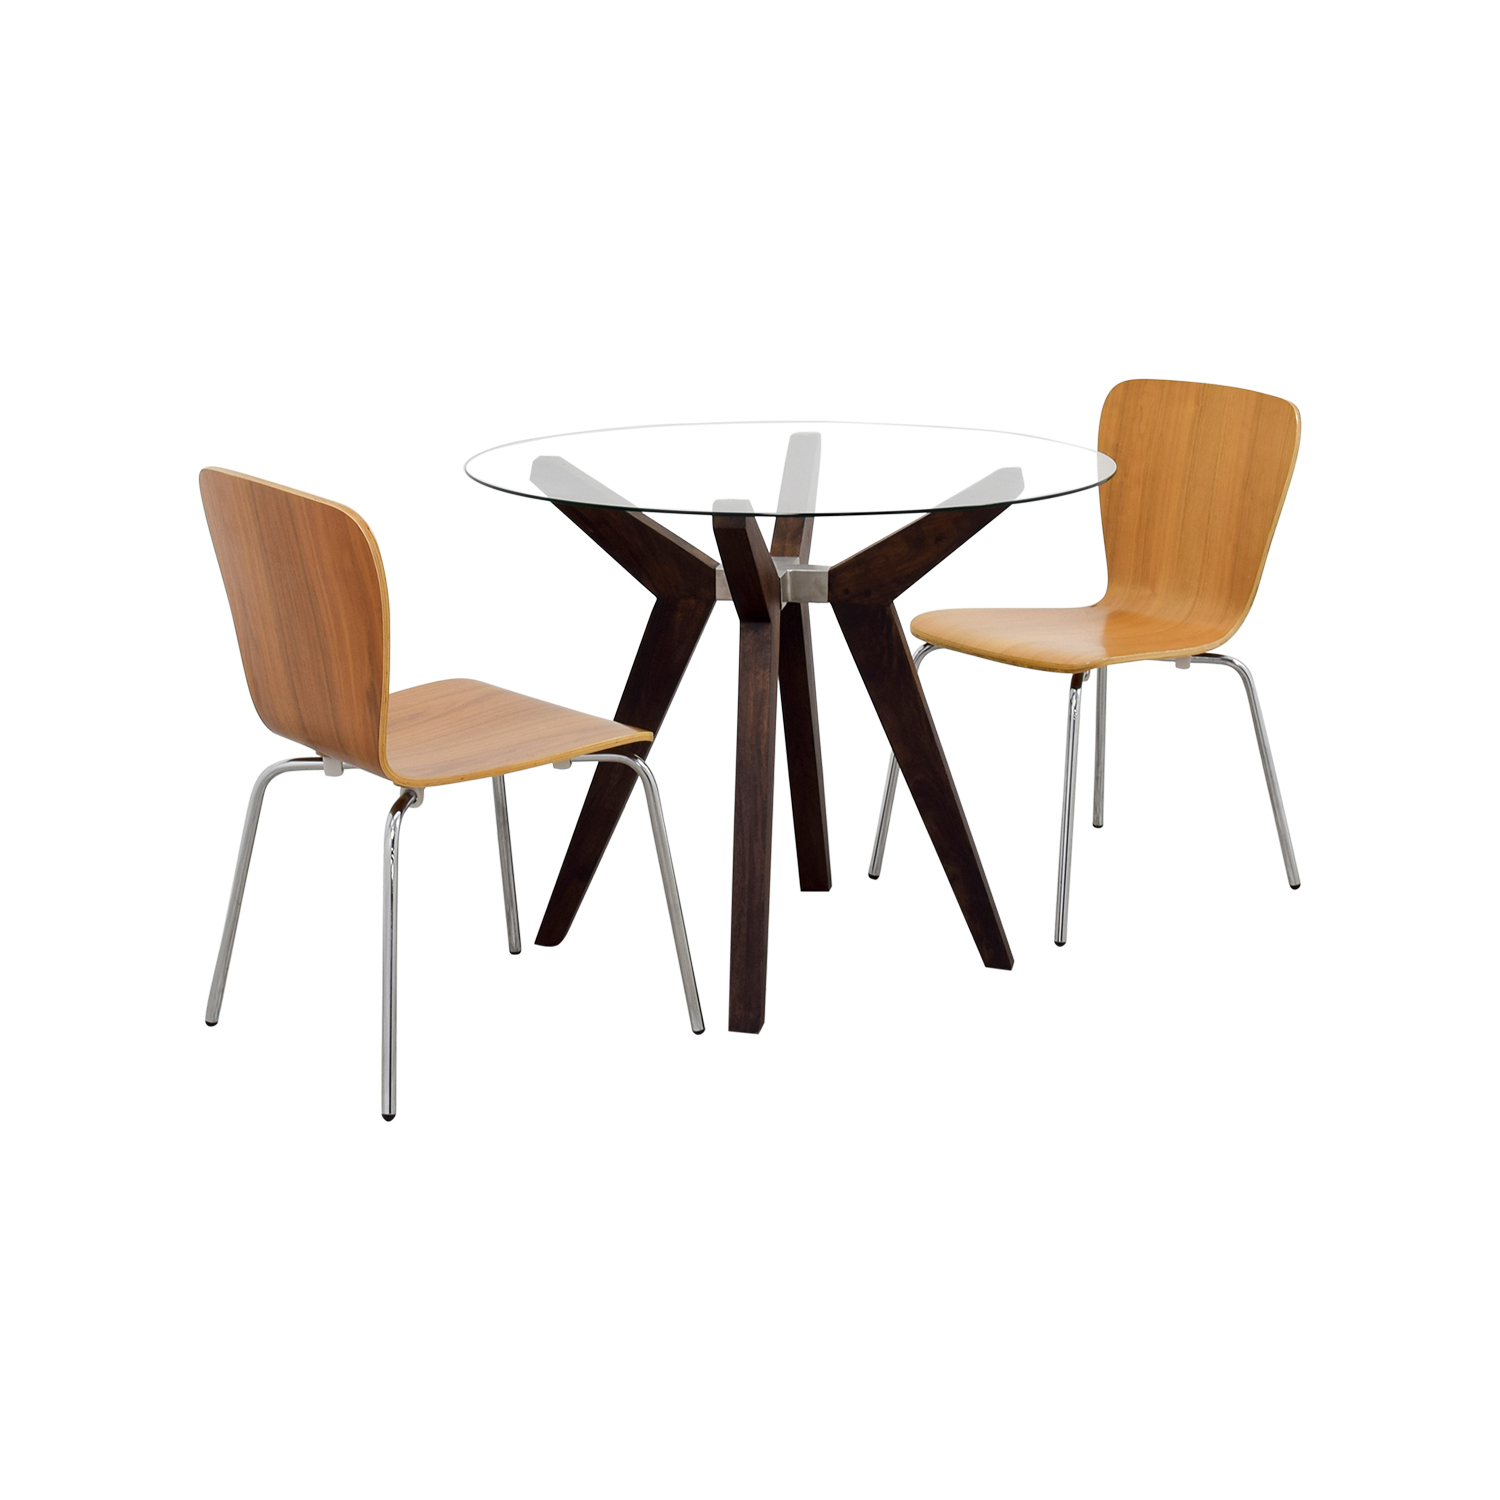 74 Off Crate Barrel Crate Barrel Strut Round Dining Table Set Tables